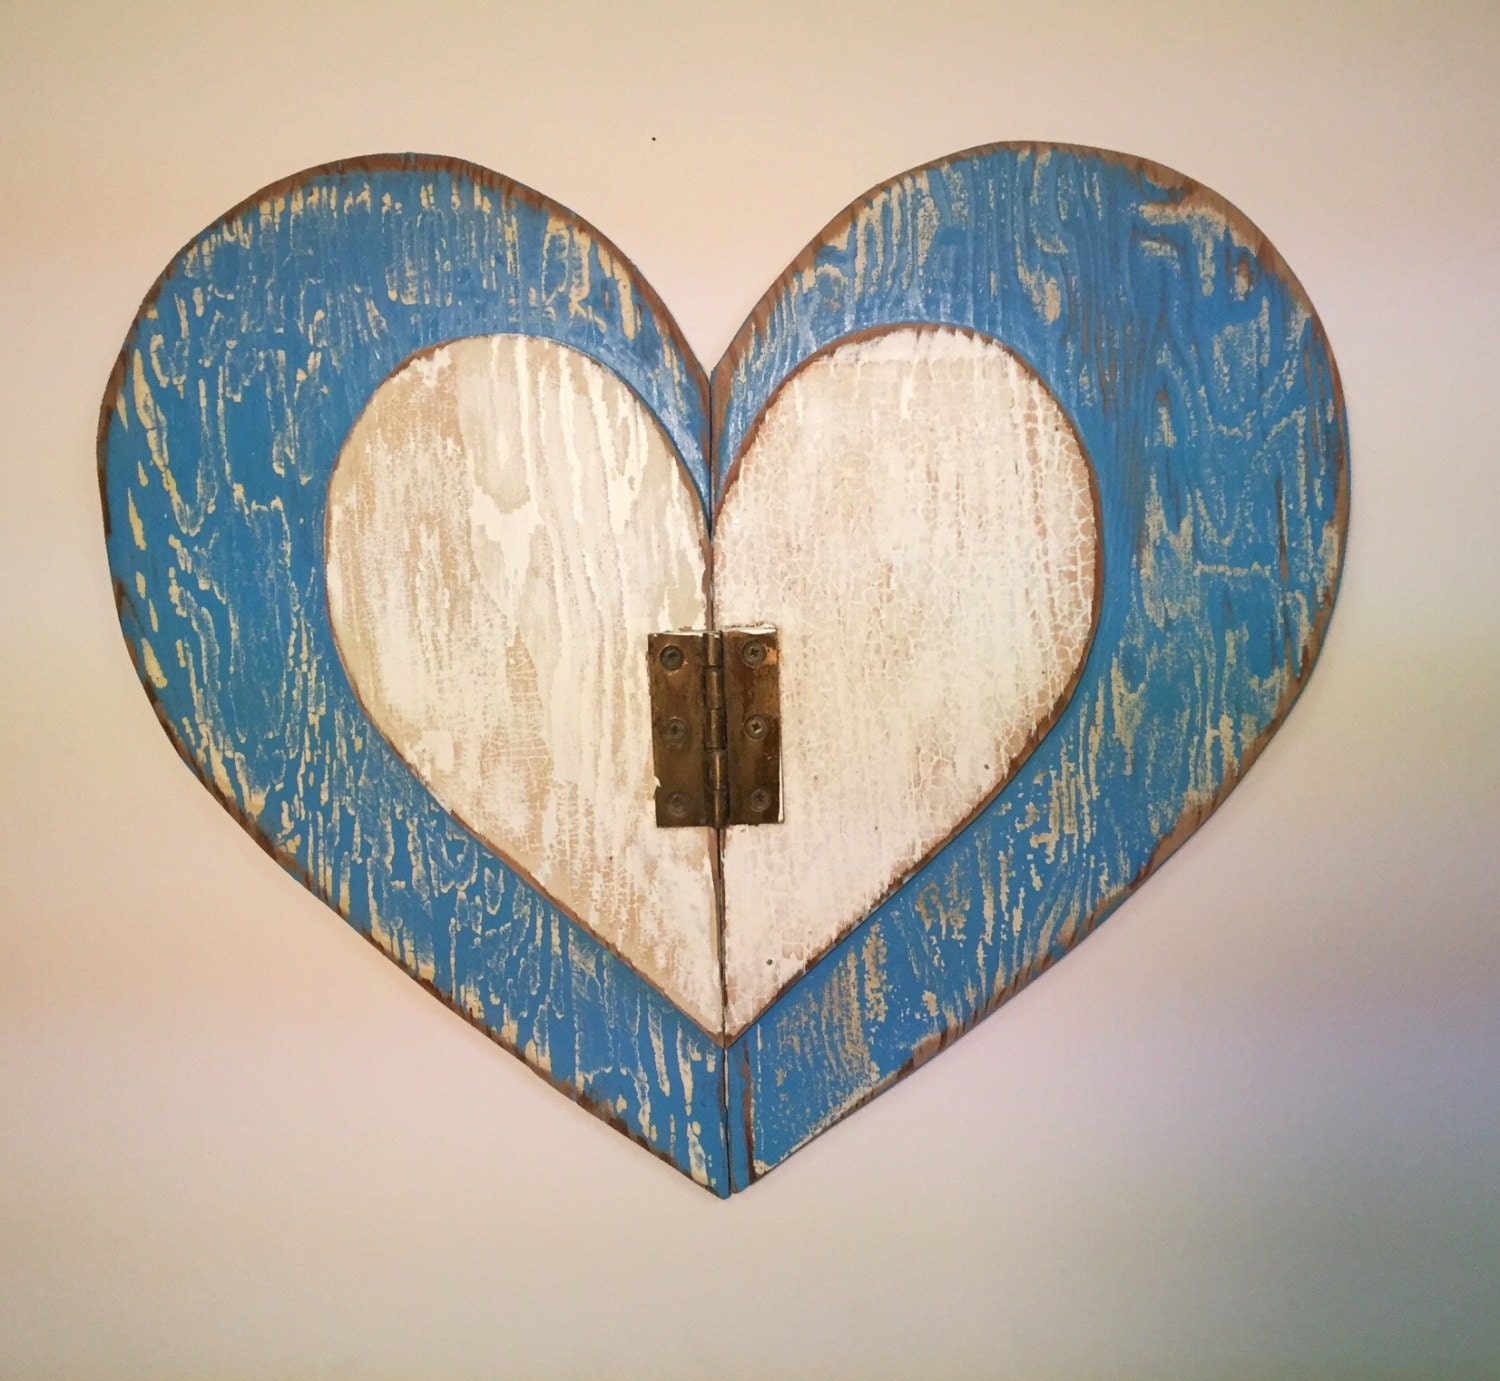 Heart large blue white weathered wood wall art rustic beach for Wooden heart wall decor